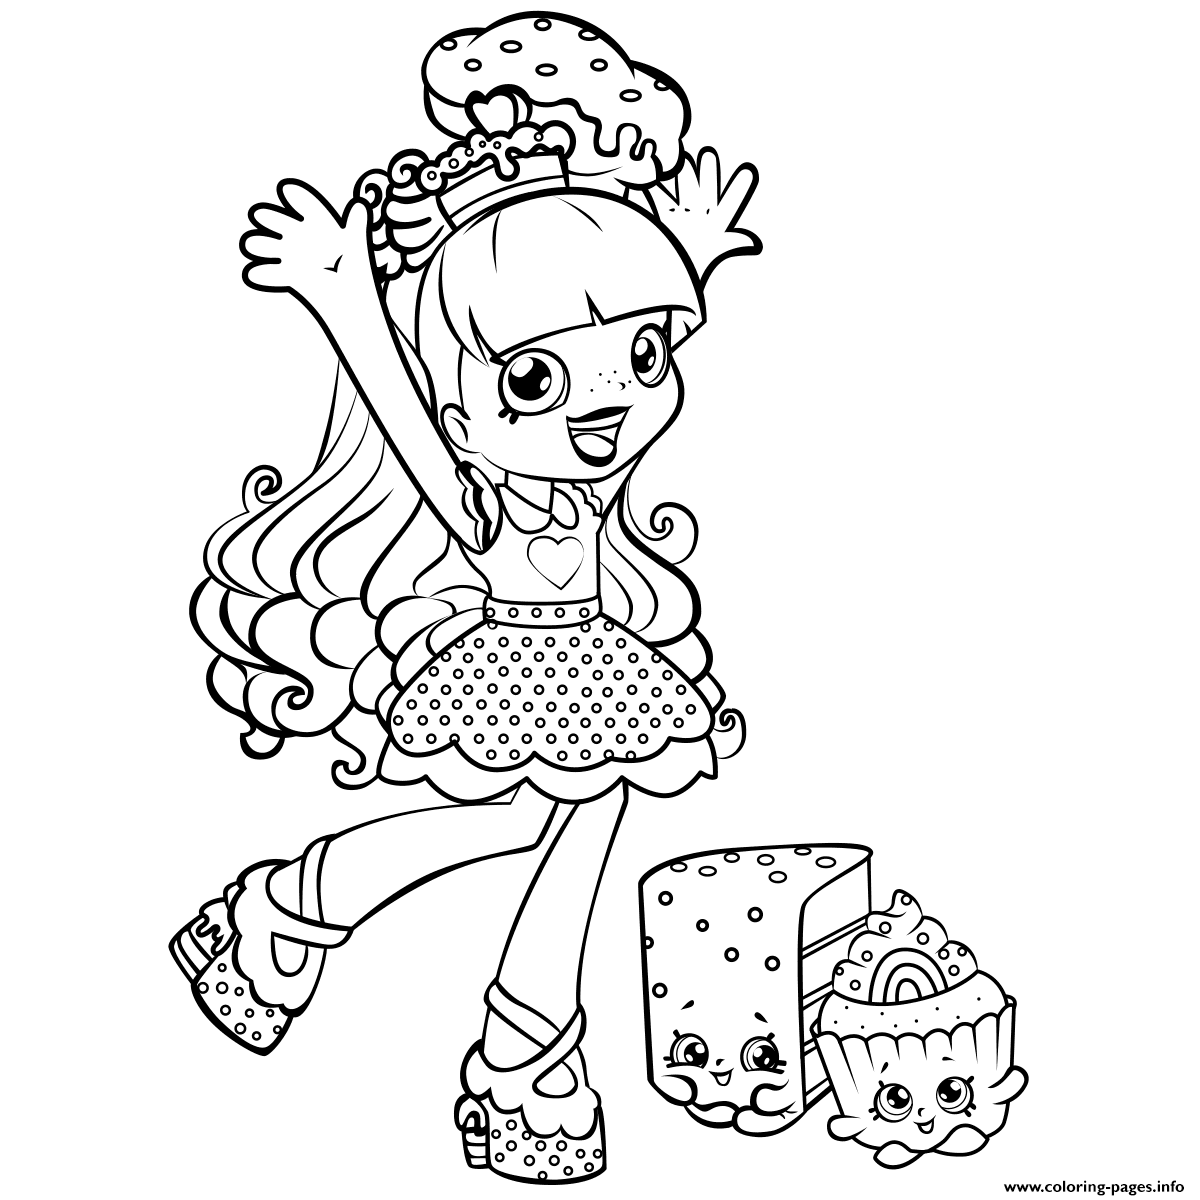 Shopkins coloring pages to print season 2 - Print Shopkins Shoppie Is Happy Cupecake Coloring Pages